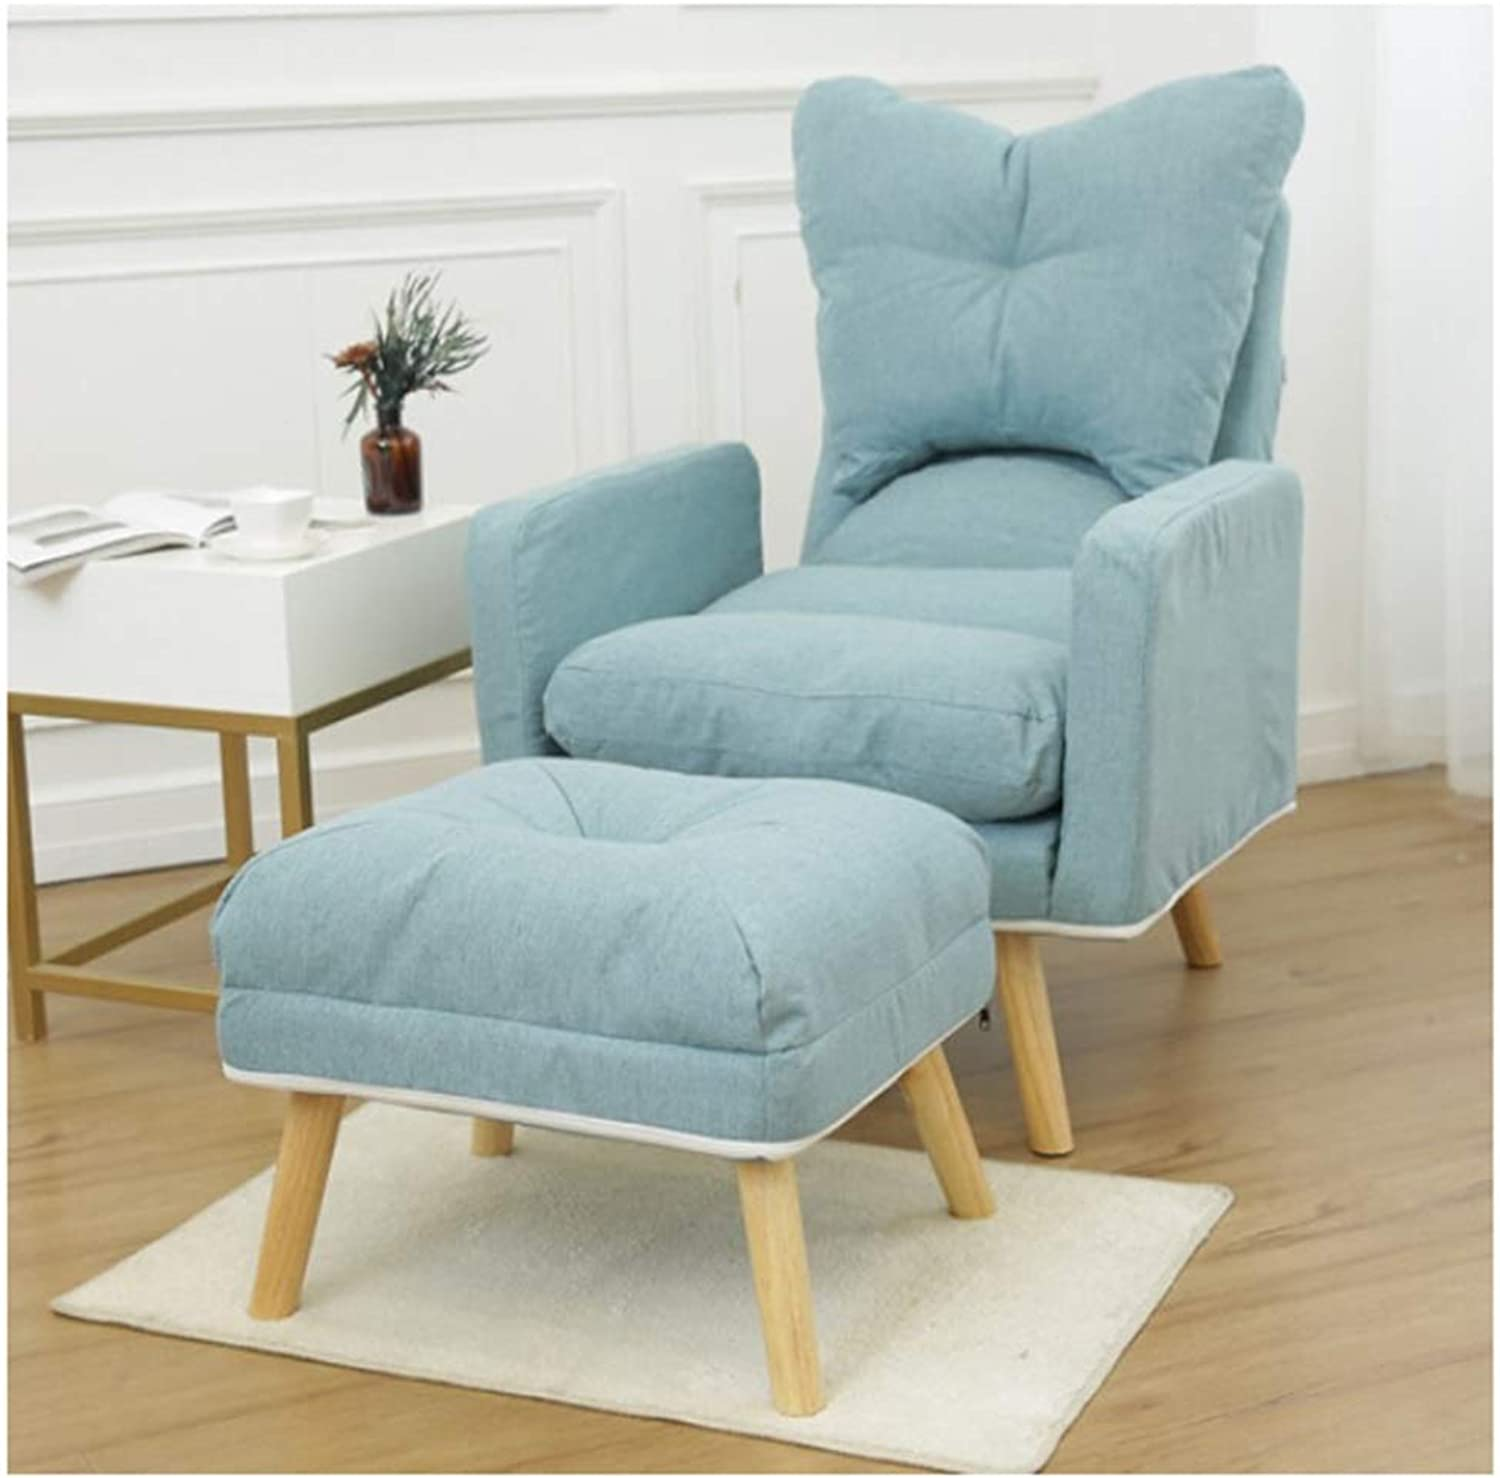 SCM Lazy Couch Thick Fabric Chair Foldable Office Bedroom Nap Modern Minimalist Single Sofa with Footstool 60×95cm (color   Light blueee)